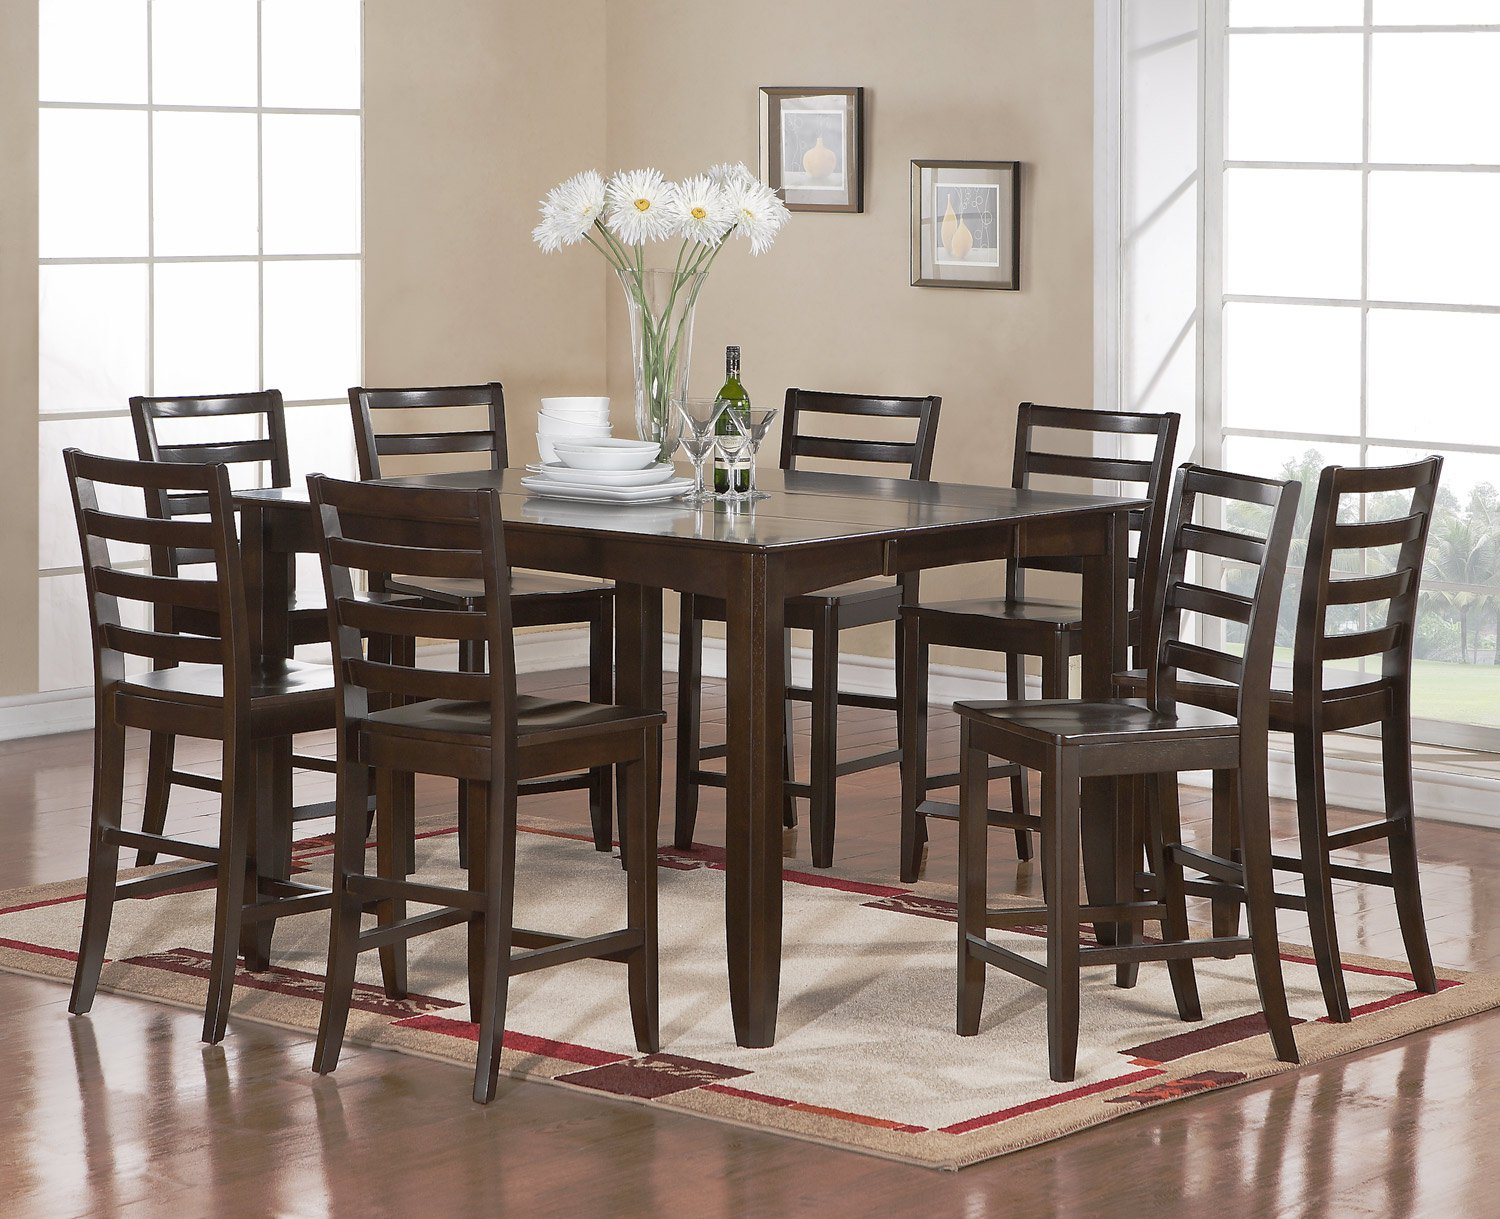 fairwinds square counter height dining table in cappuccino size 54